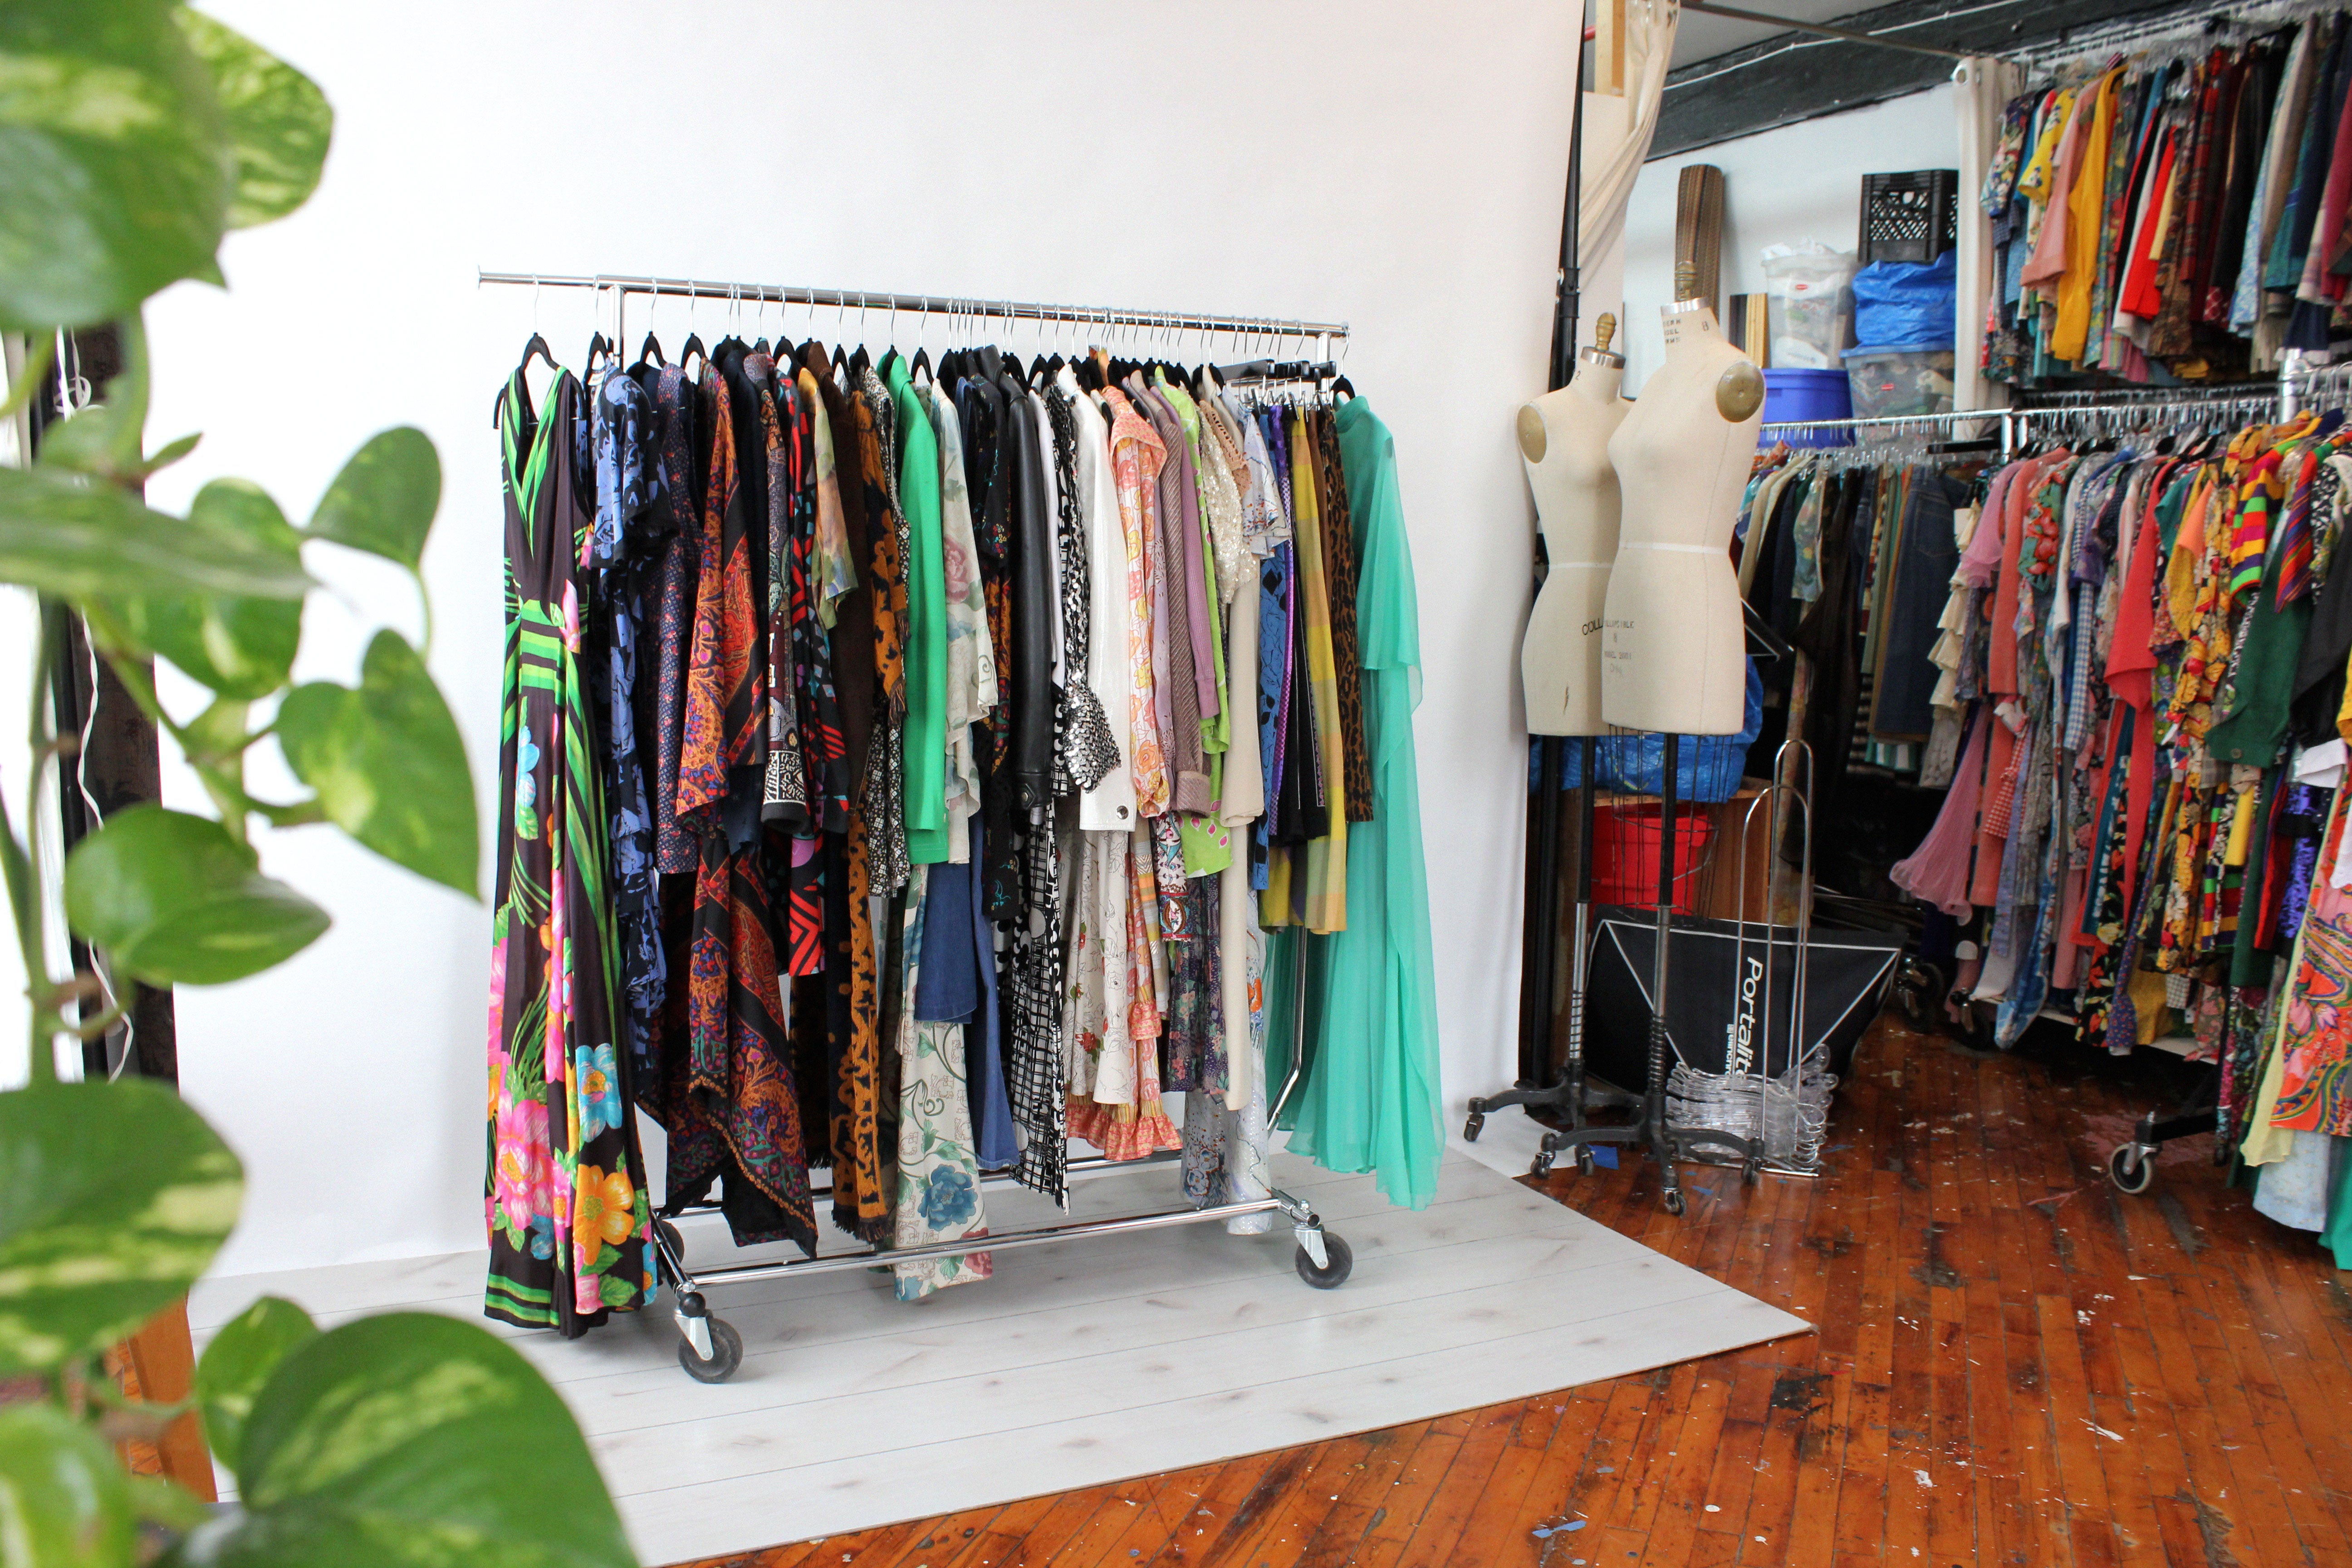 A retail shop with a display of vintage clothing on a rack